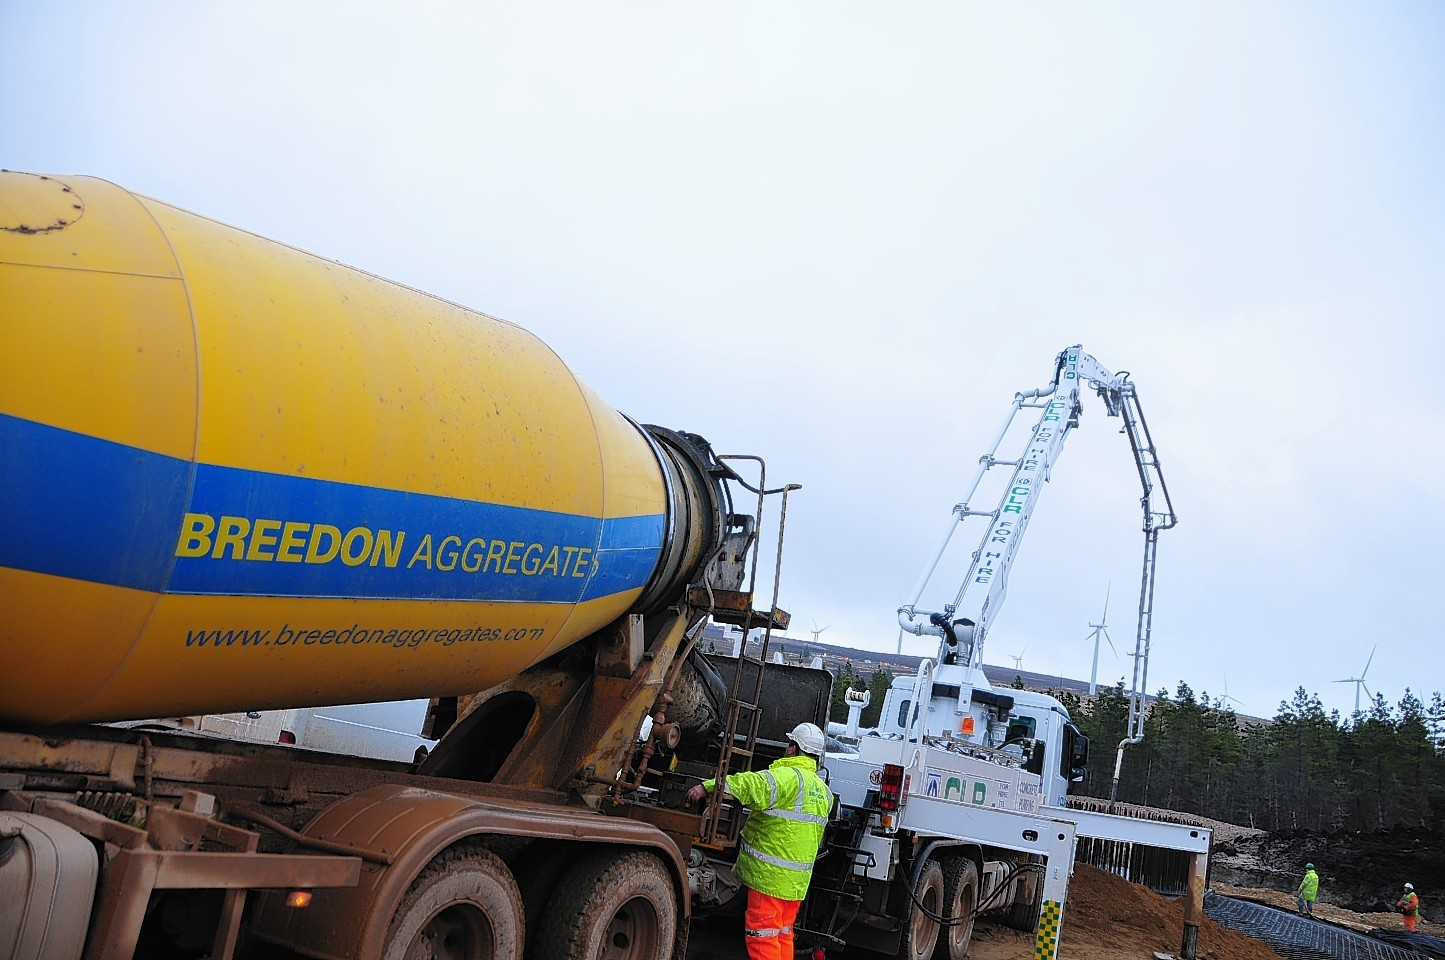 Breedon targets new opportunities for expansion